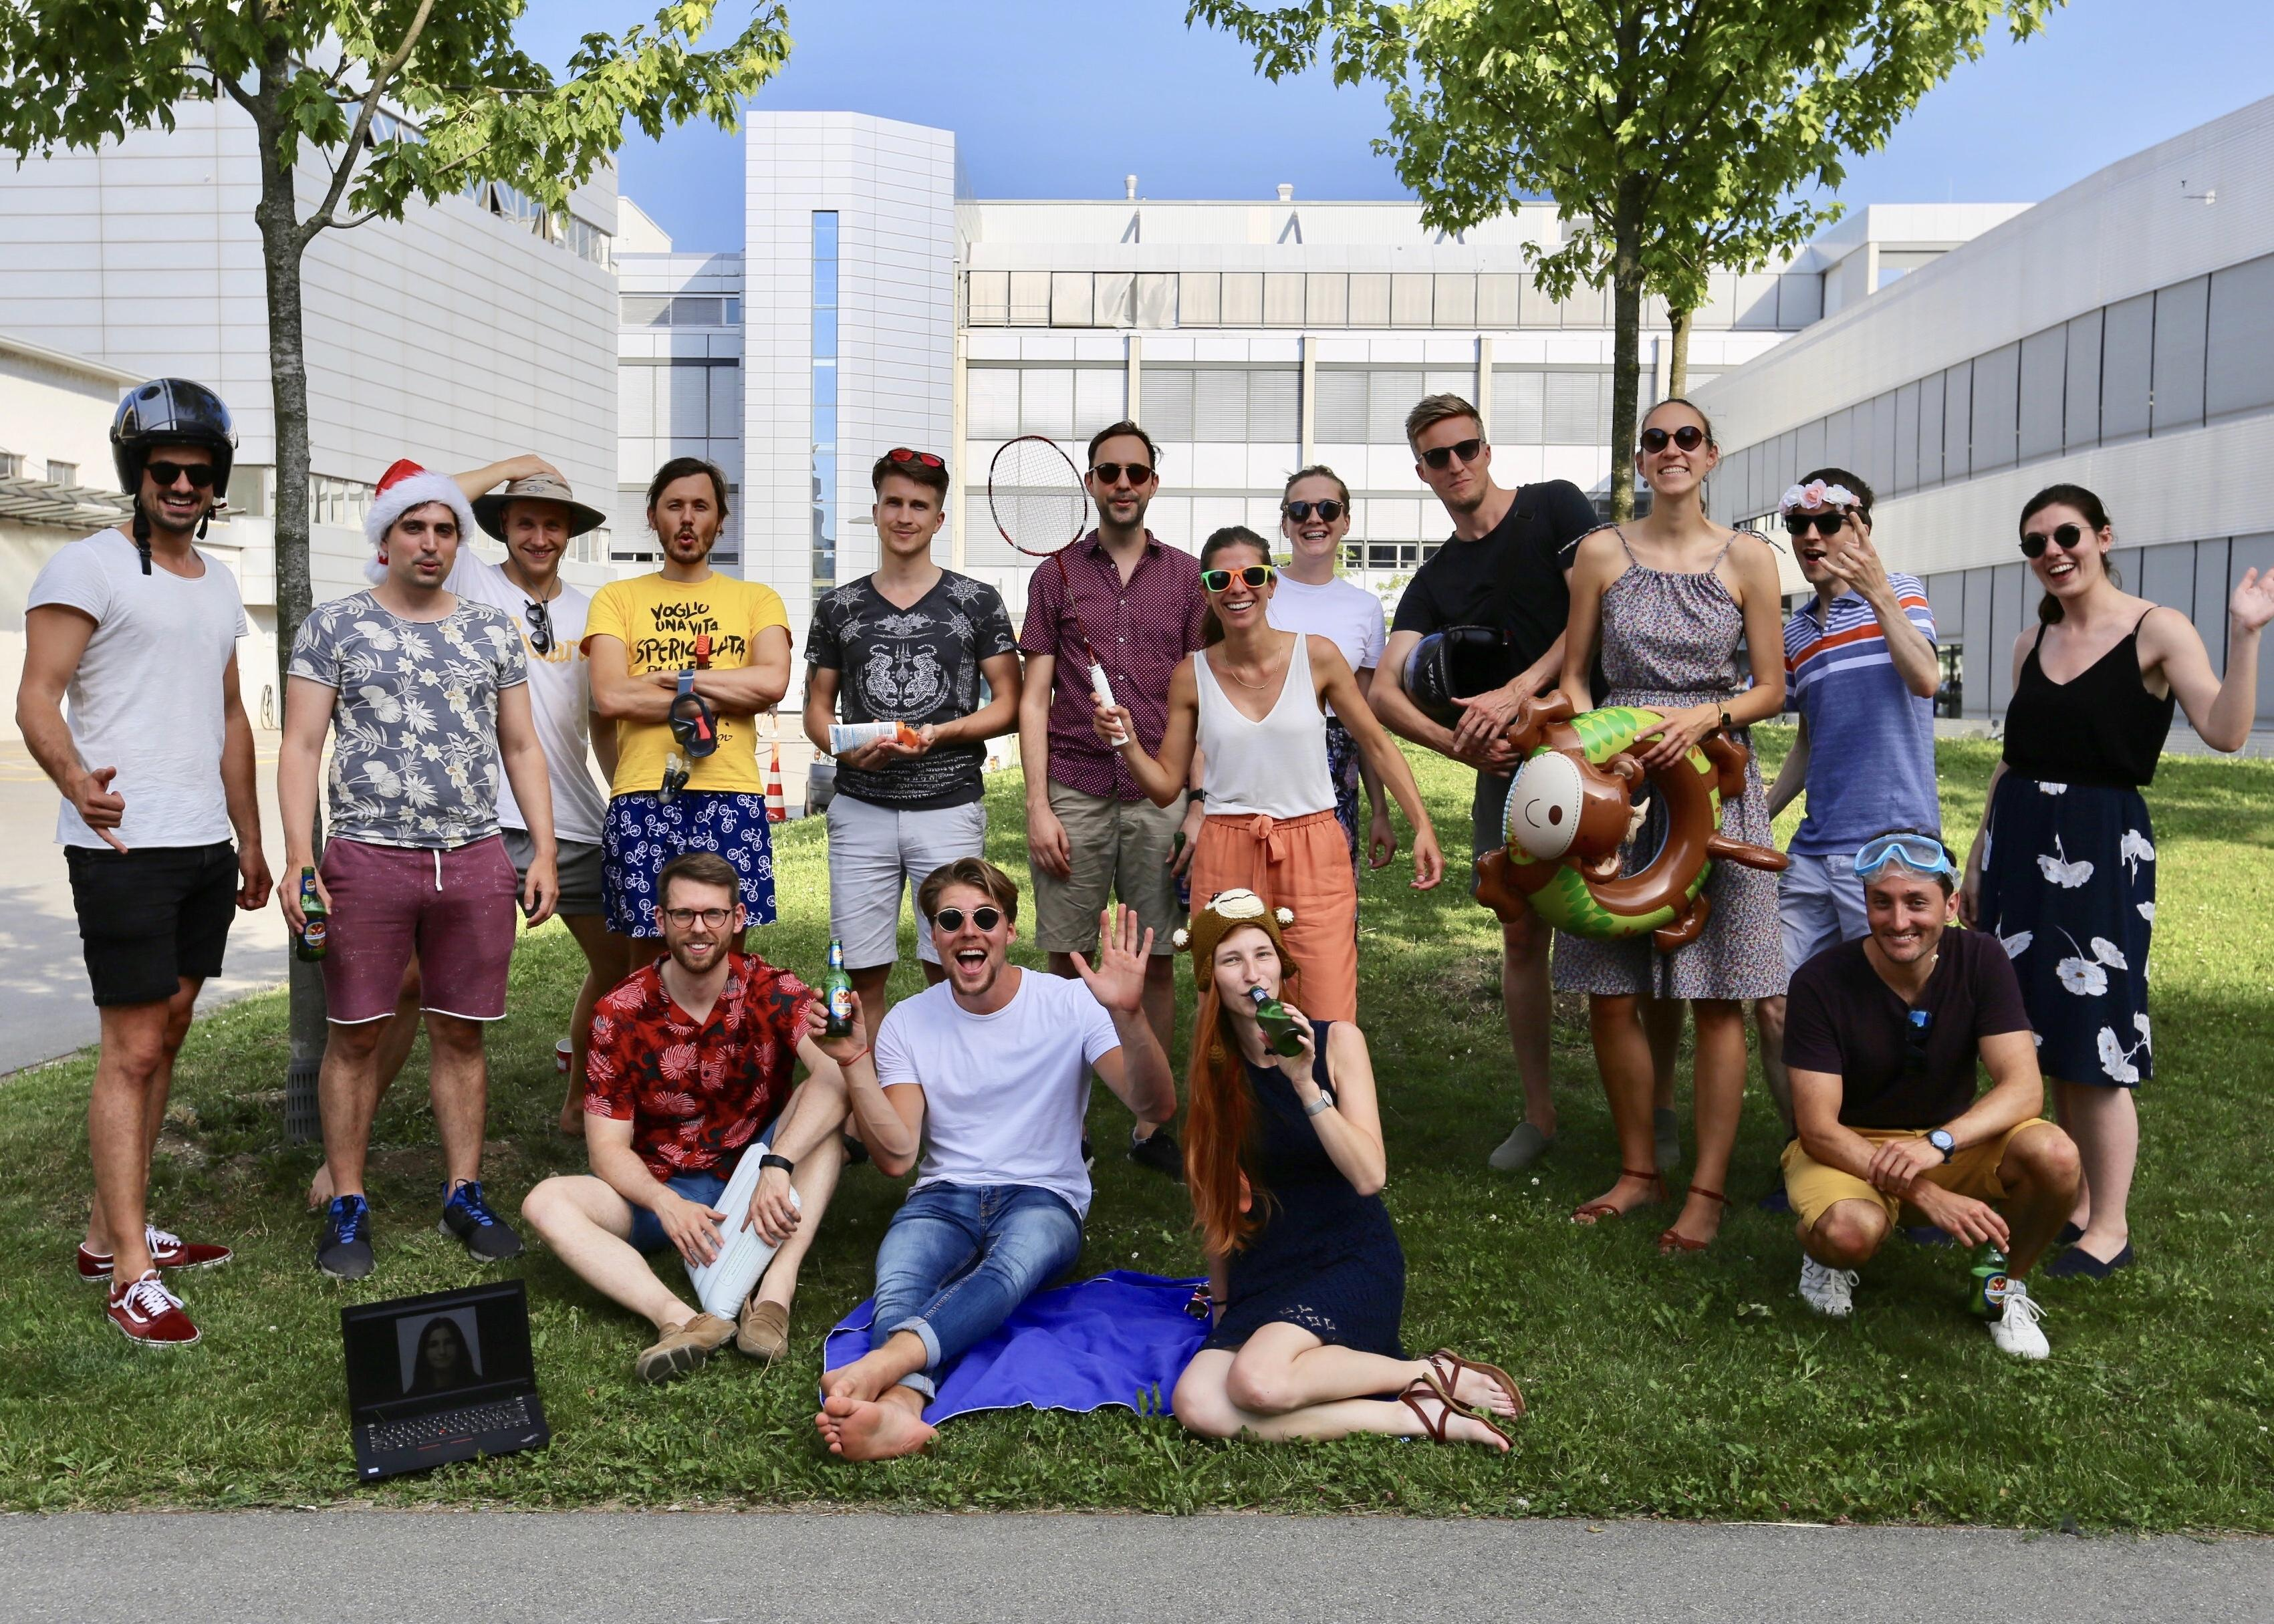 group photo of employees on the grass having fun in summer clothes